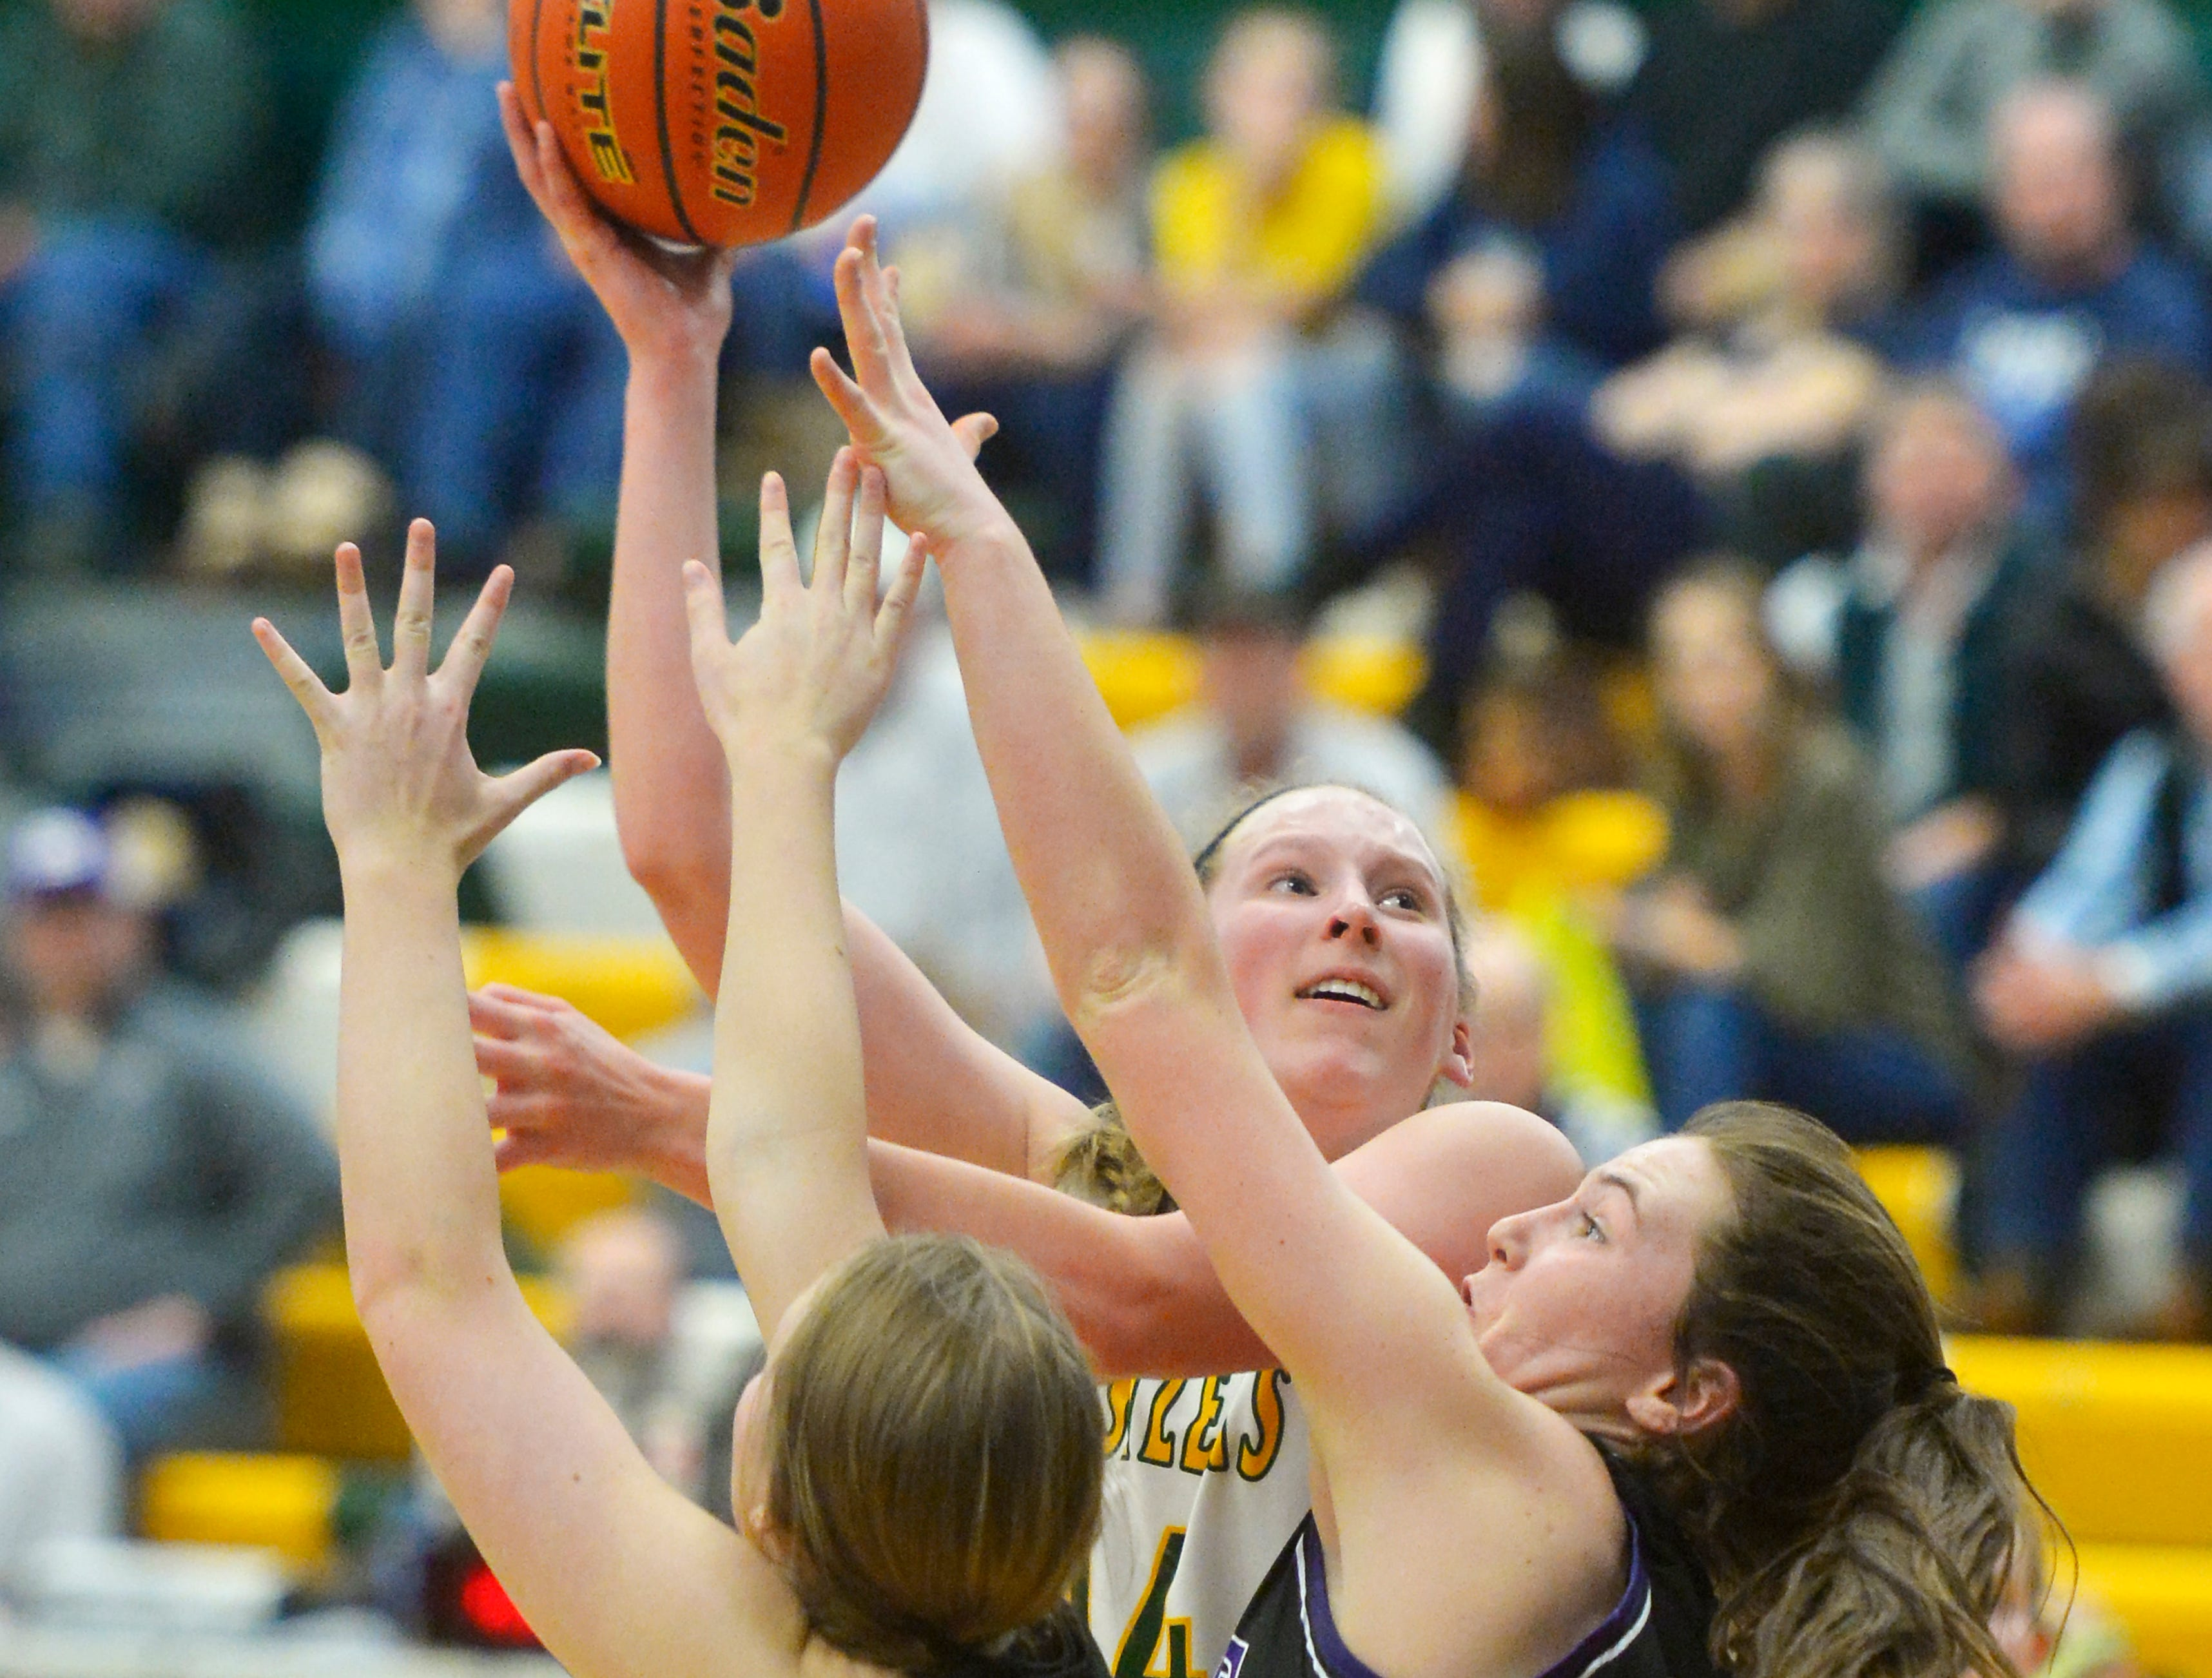 CMR's Allie Olsen attmepts a hook shot over Butte's Justise Birkenbuel and Haley Herron during the girls semifinal game of the Eastern AA Basketball Tournament at the CMR Fieldhouse, Friday.